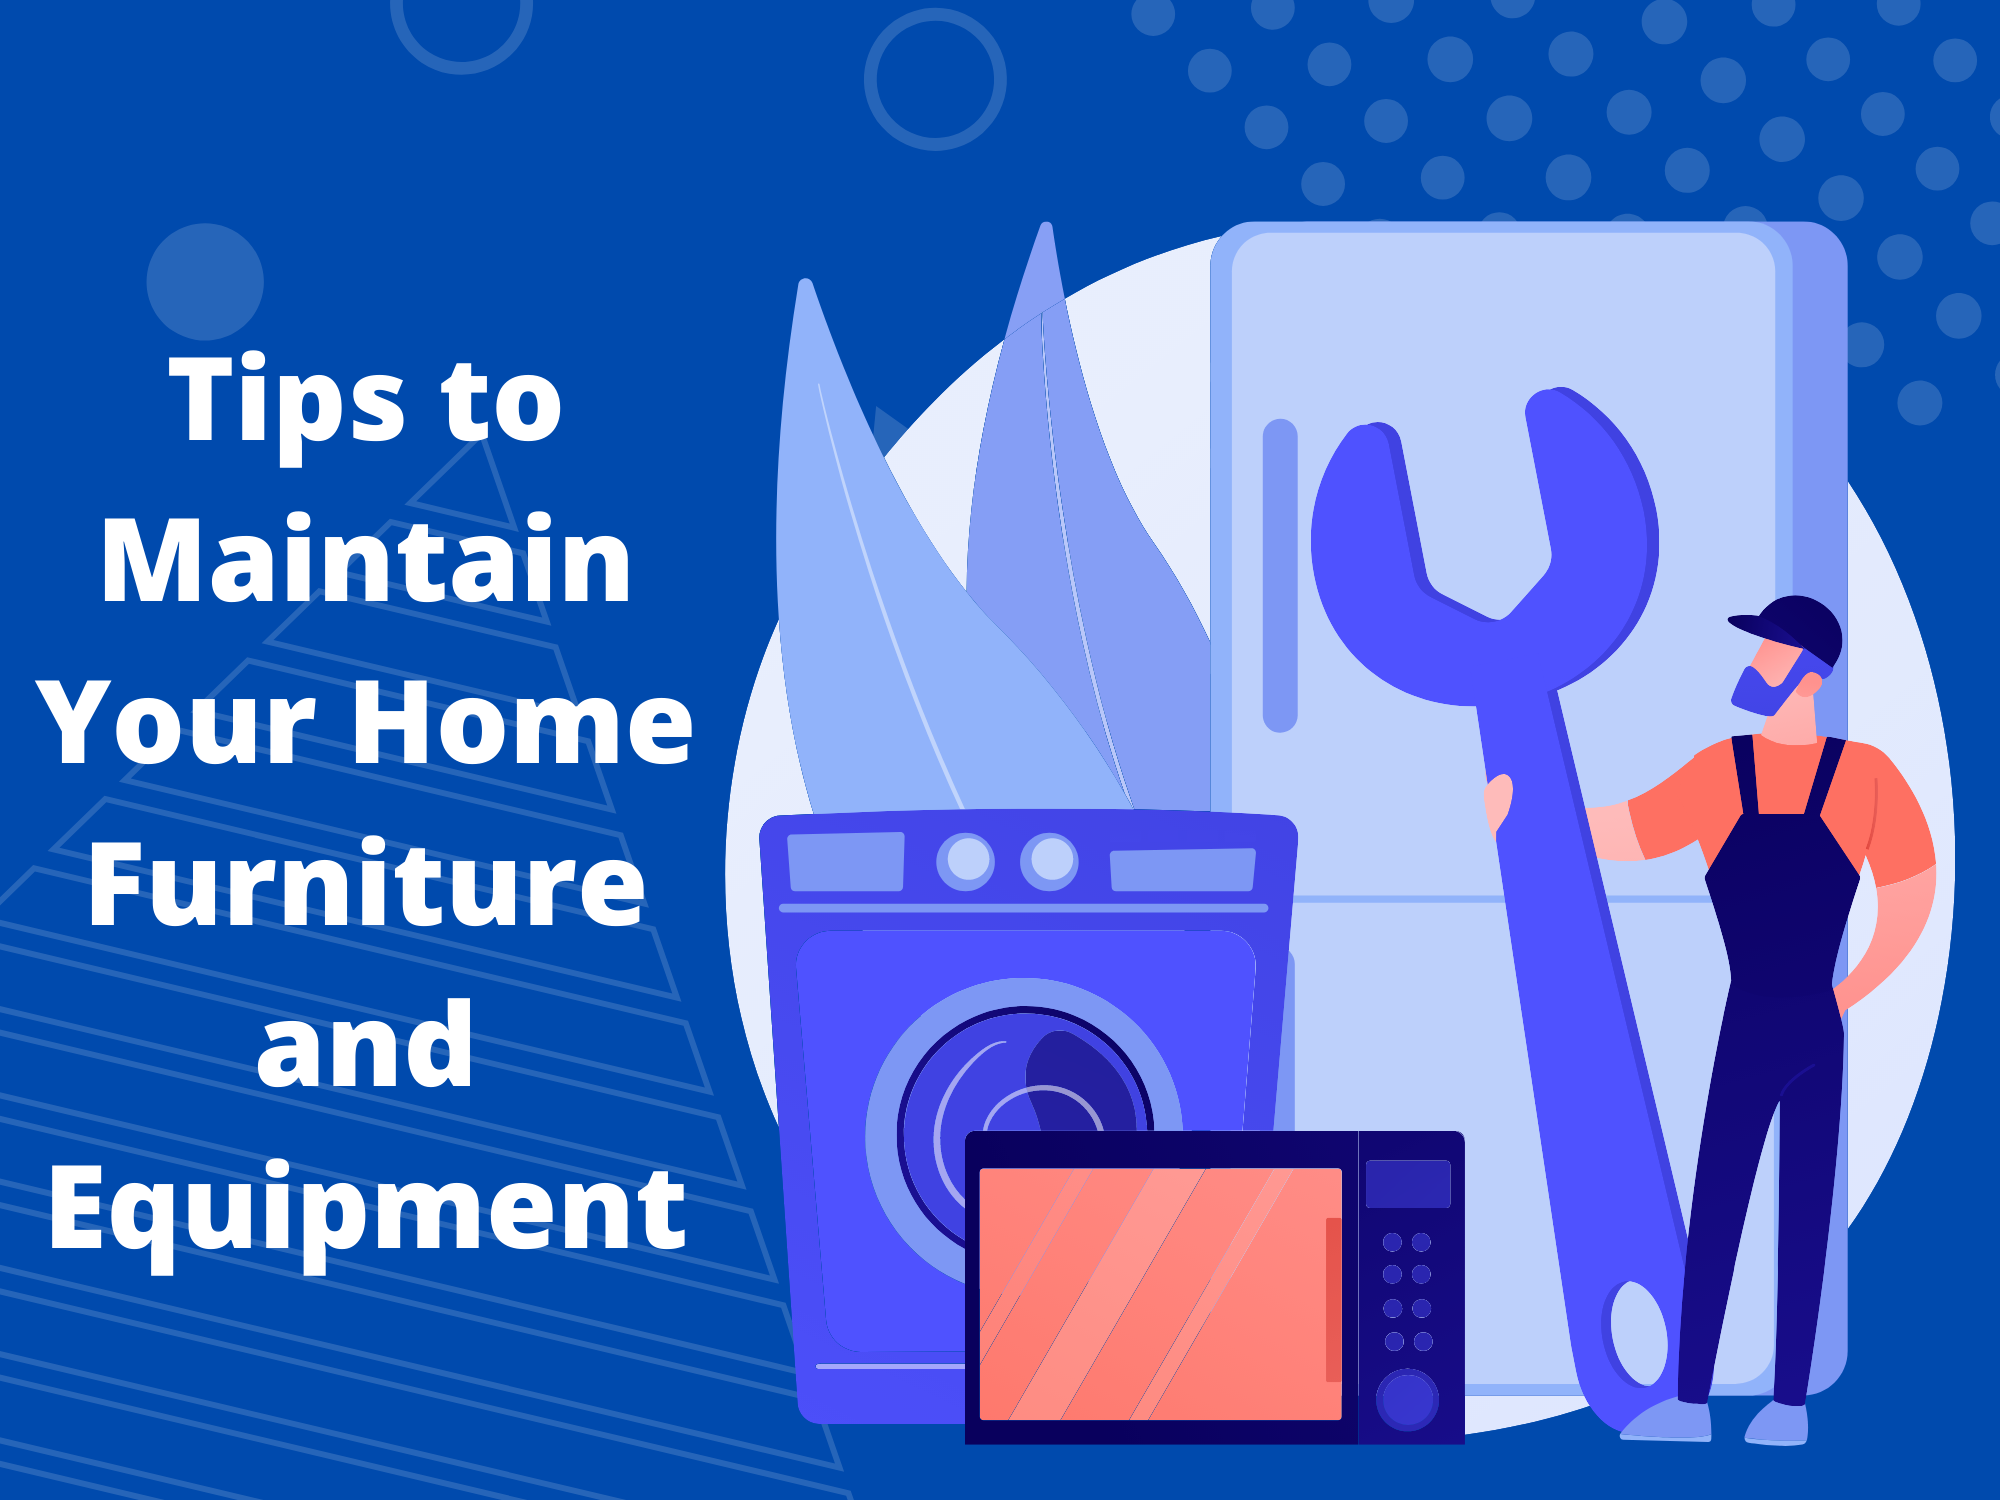 Tips-to-Maintain-Your-Home-Furniture-and-Equipment